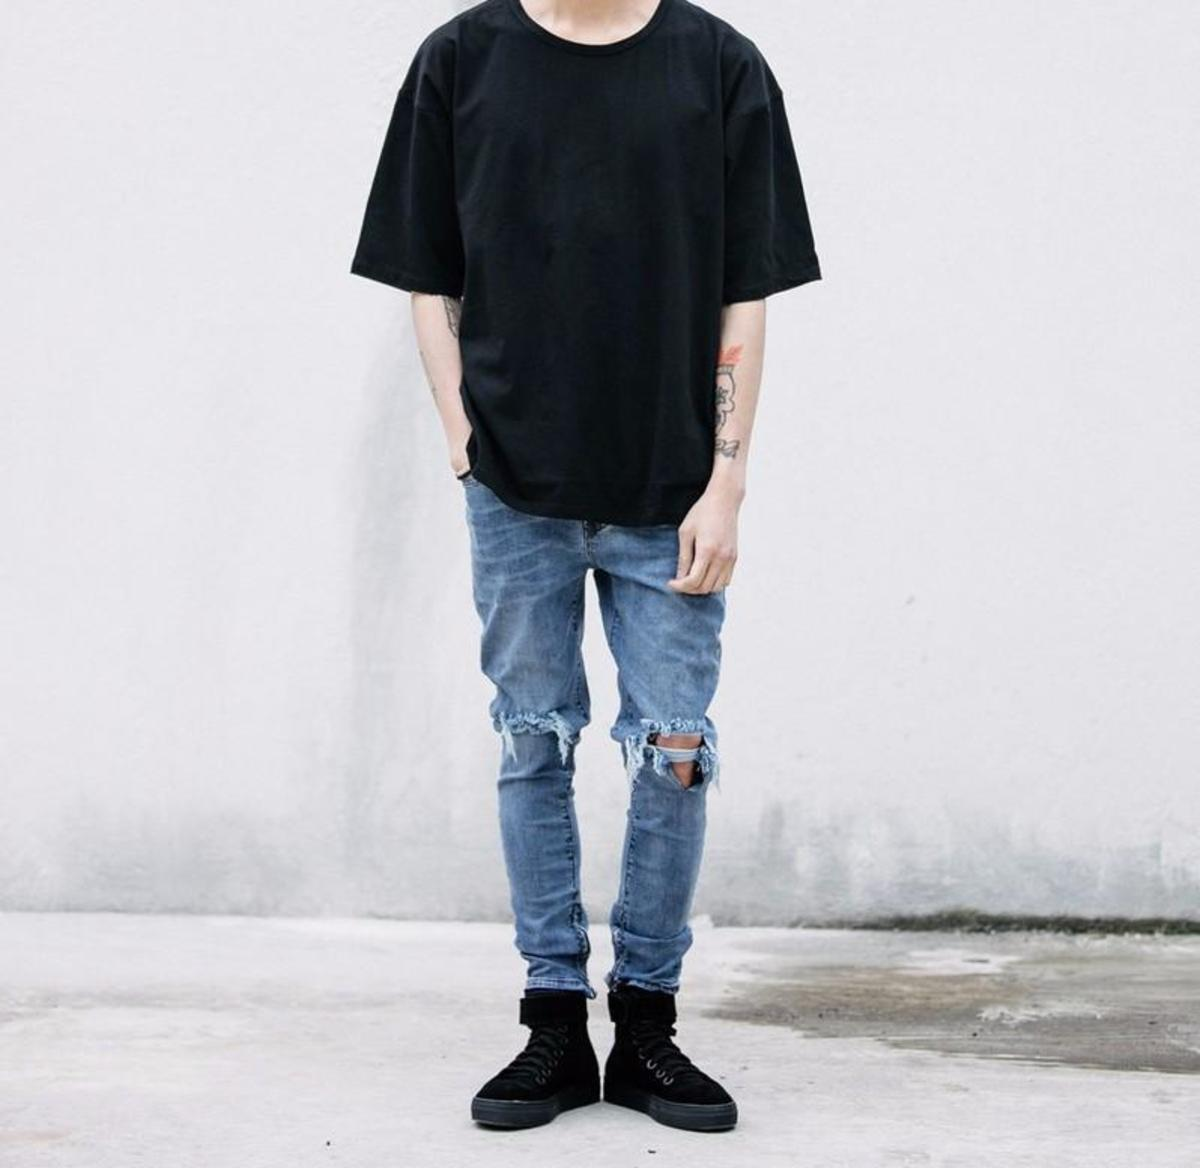 The distressed jeans and oversized shirts (like those released by Fear Of God and Yeezy) take a lot of inspiration from the skater and grunge cliques in the 90s. And the oversized aesthetic can even be traced back to hip hop culture in the 90s.